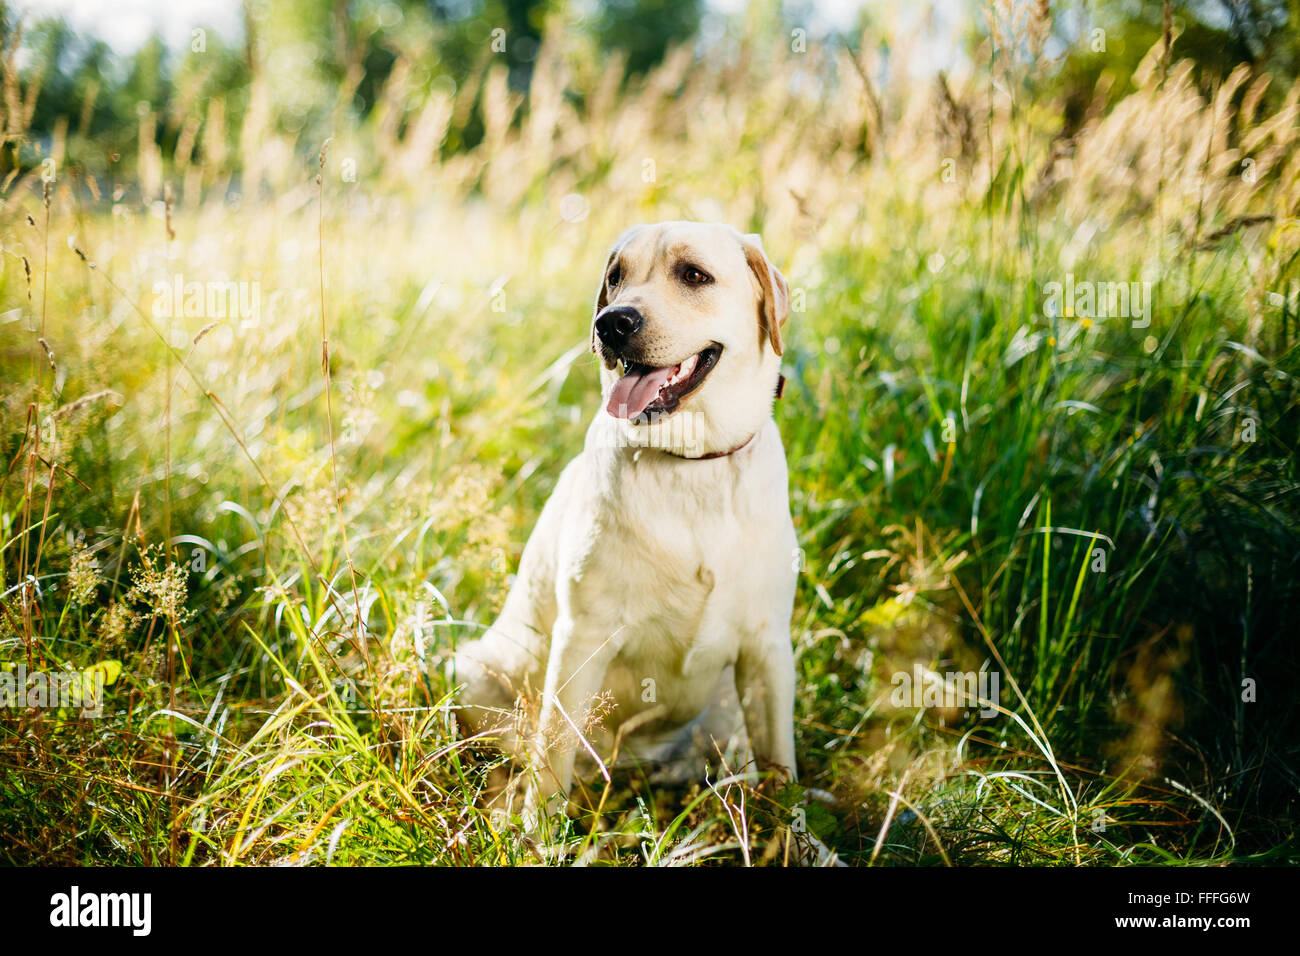 White Labrador Retriever dog sitting in Grass, Forest Park. Photo Stock